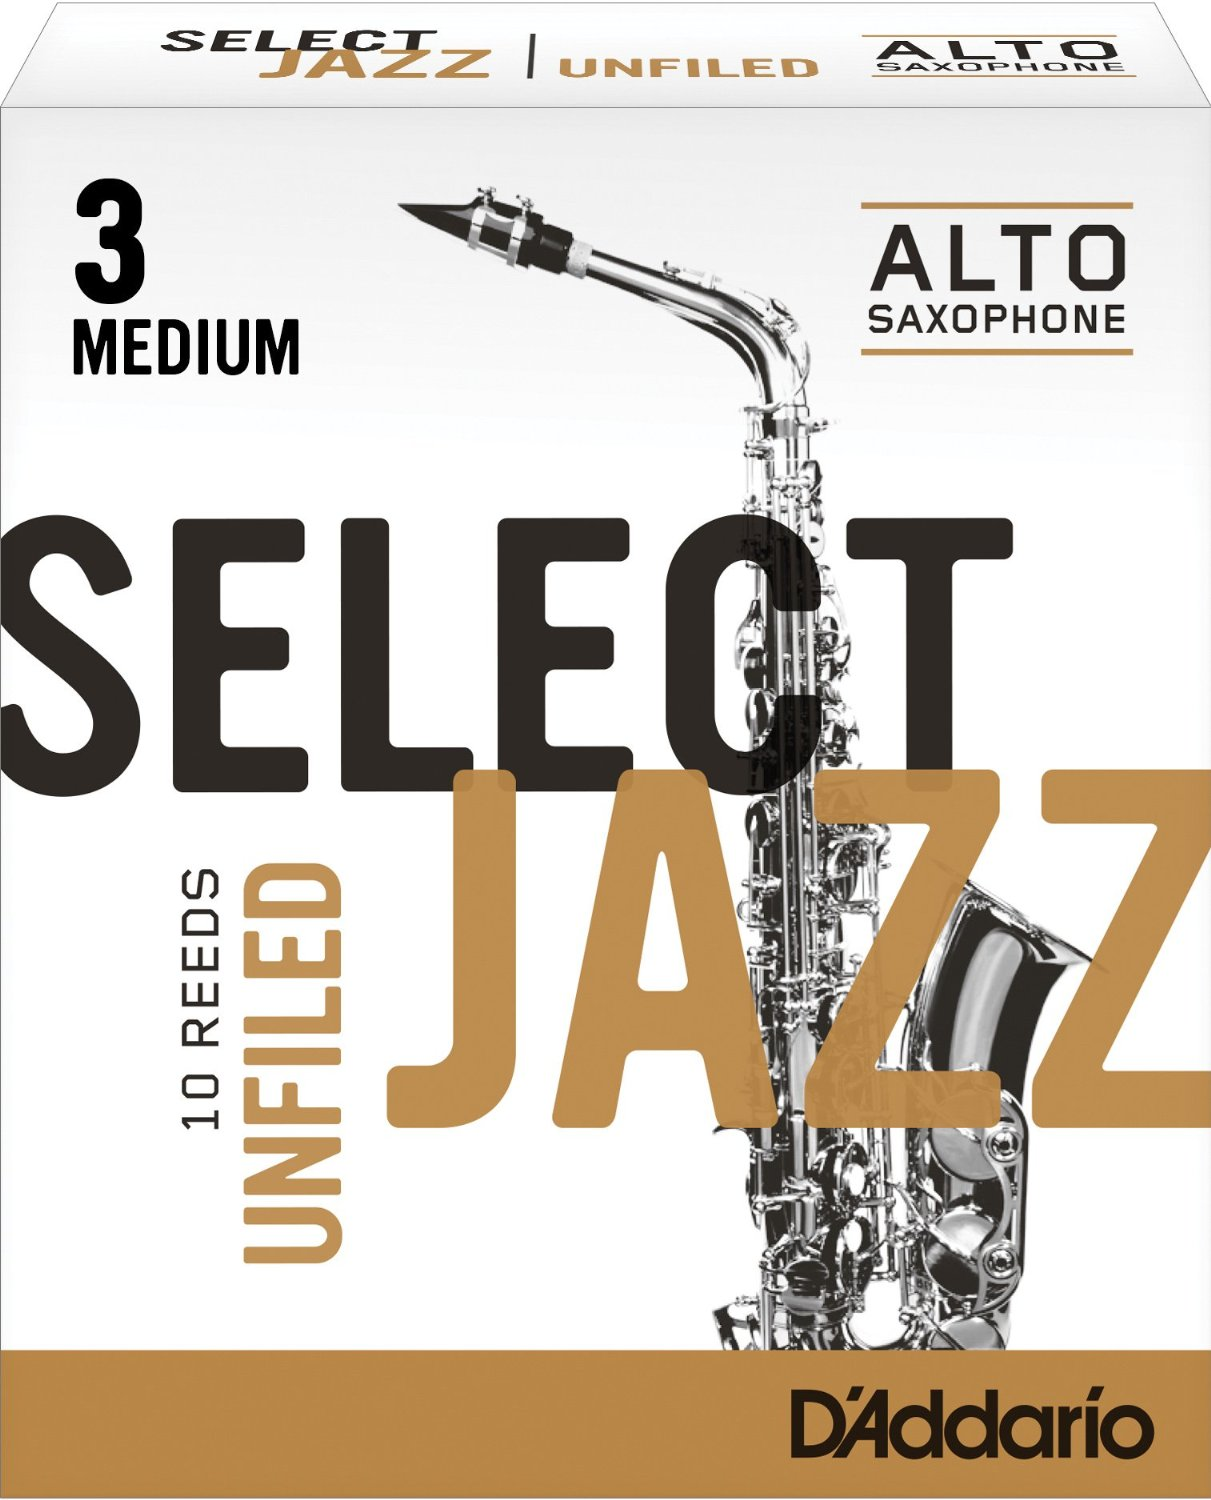 Daddario Select Jazz Unfiled Eb Alto Sax Reeds 10 ct, 3 Medium Strength by Rico